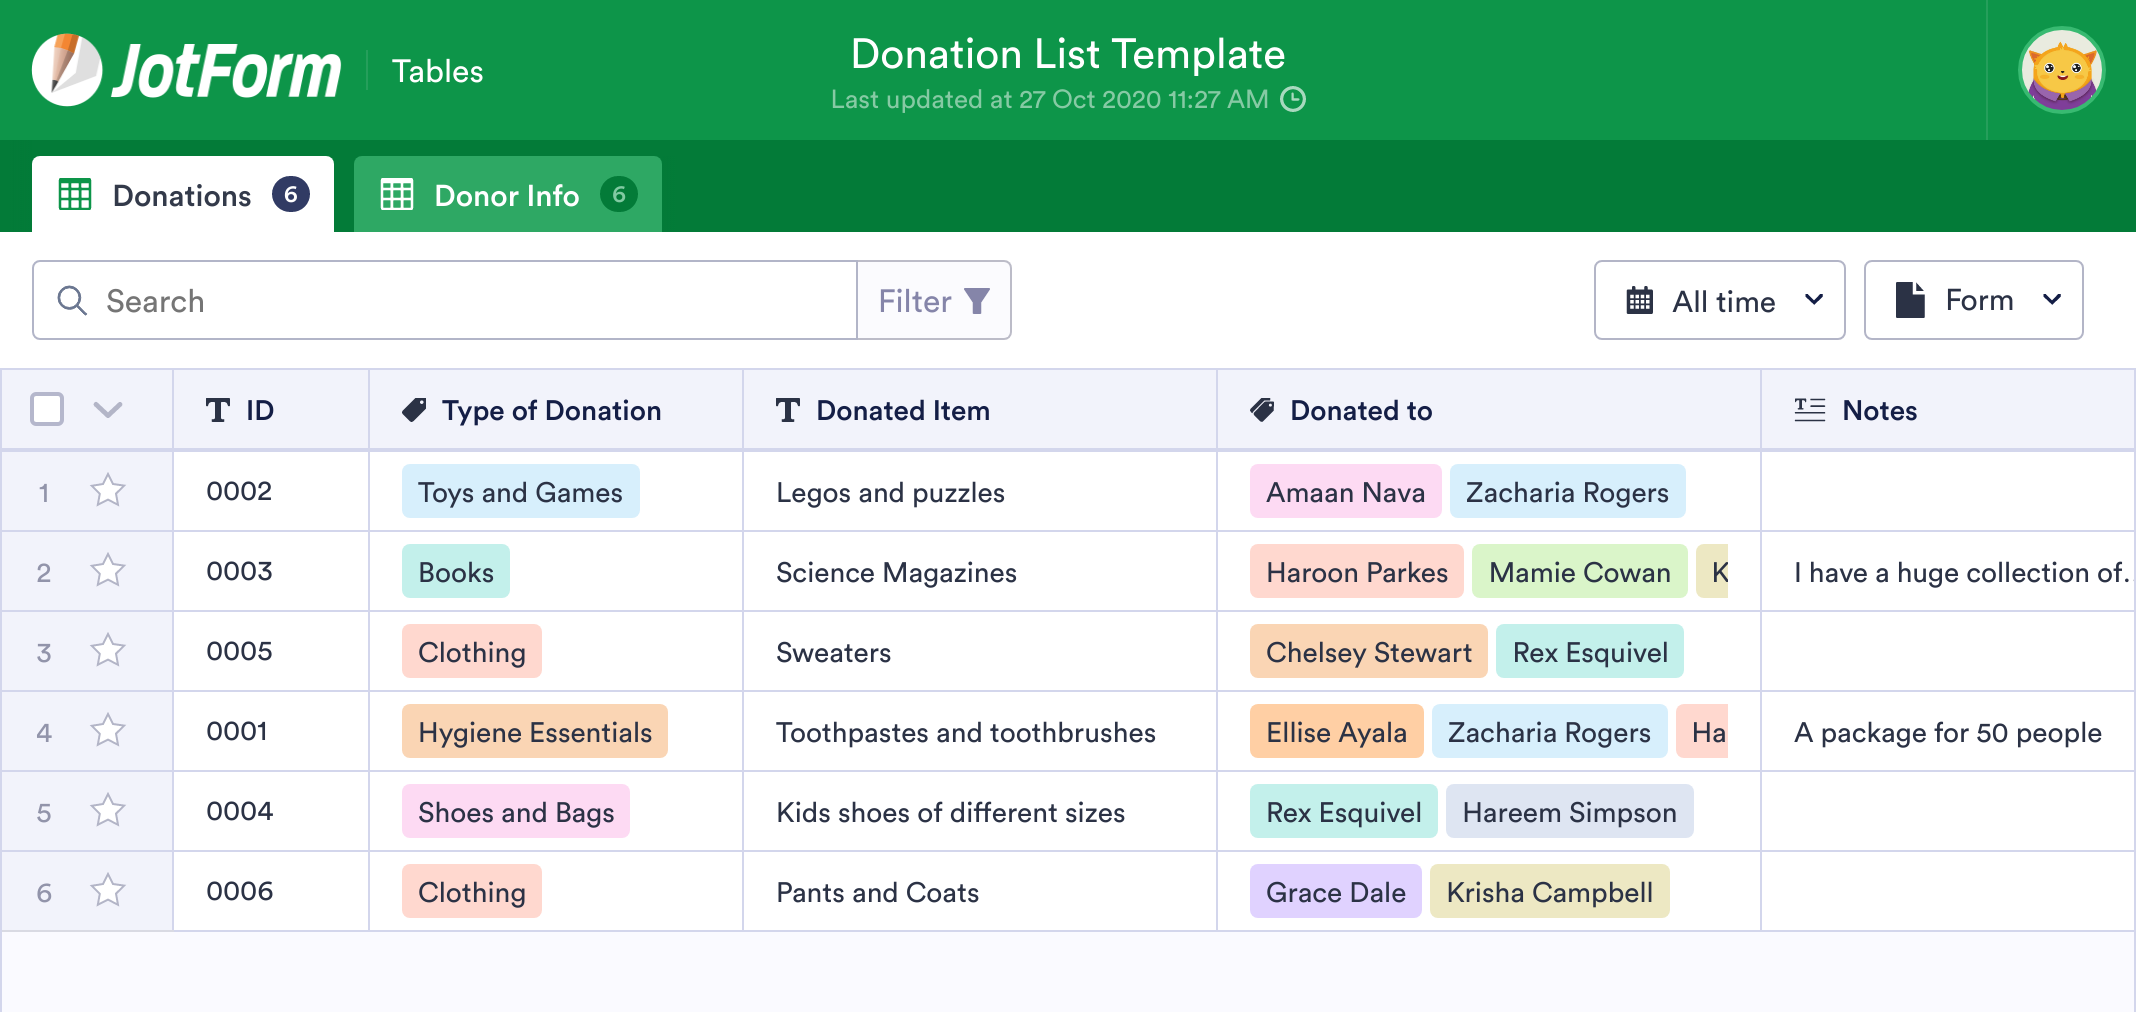 Donation List Template